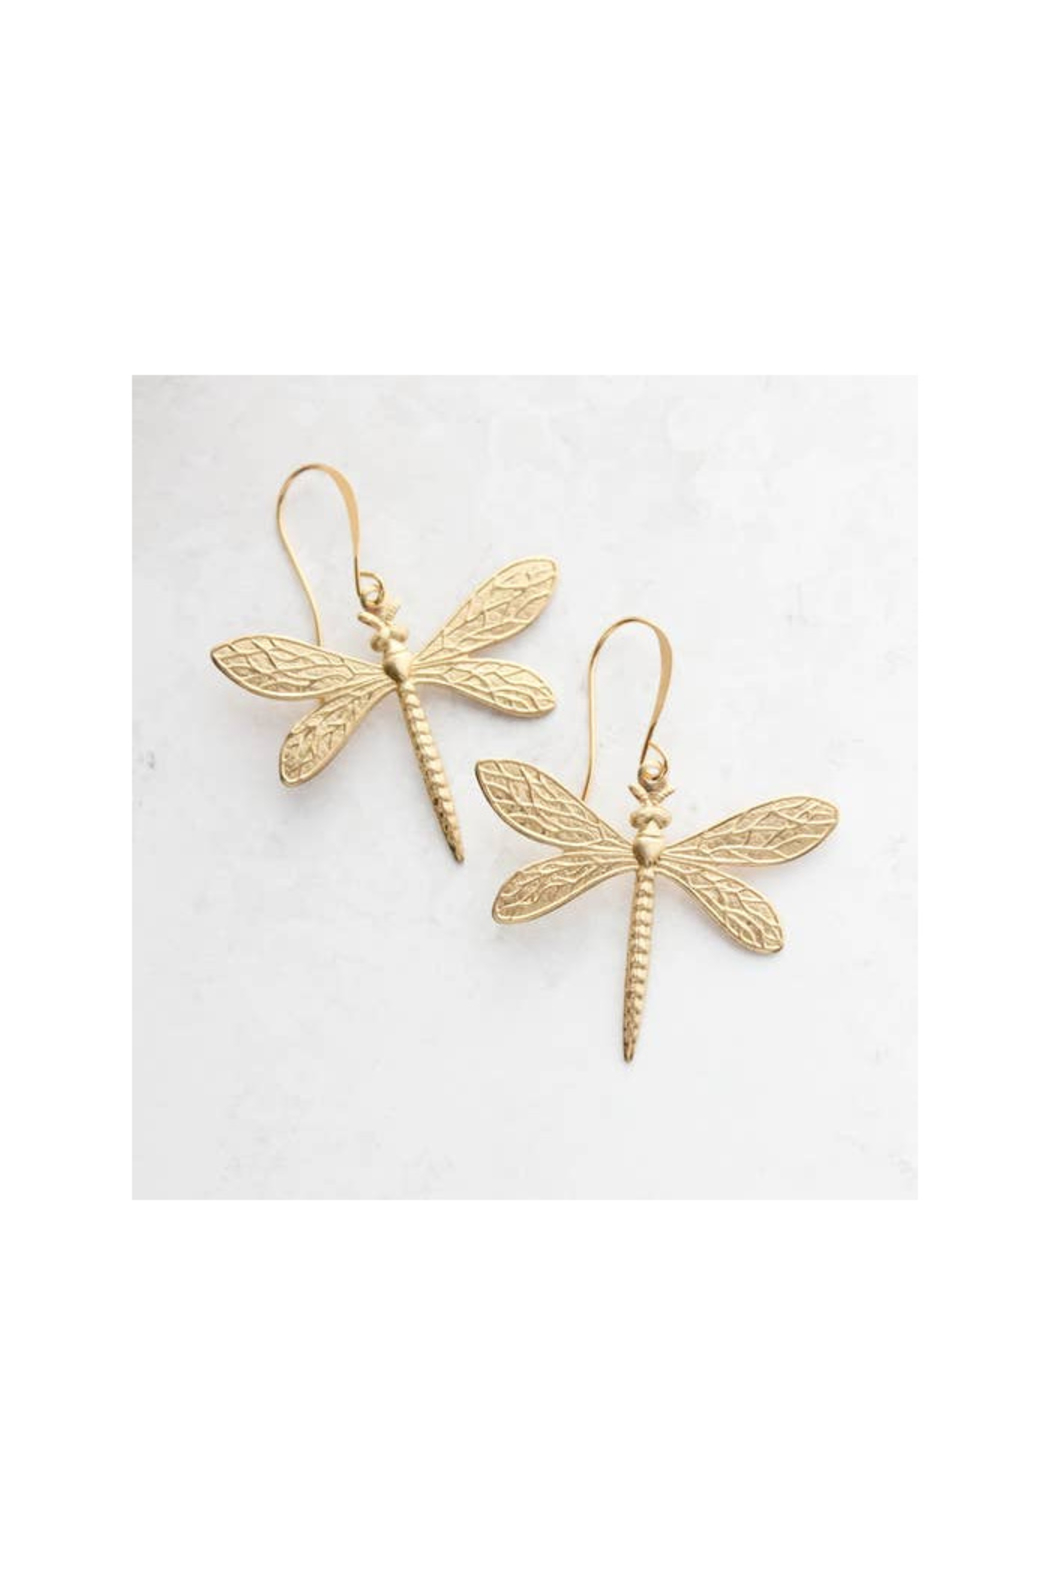 The Birds Nest Gold Dragonfly Earrings - Main Image